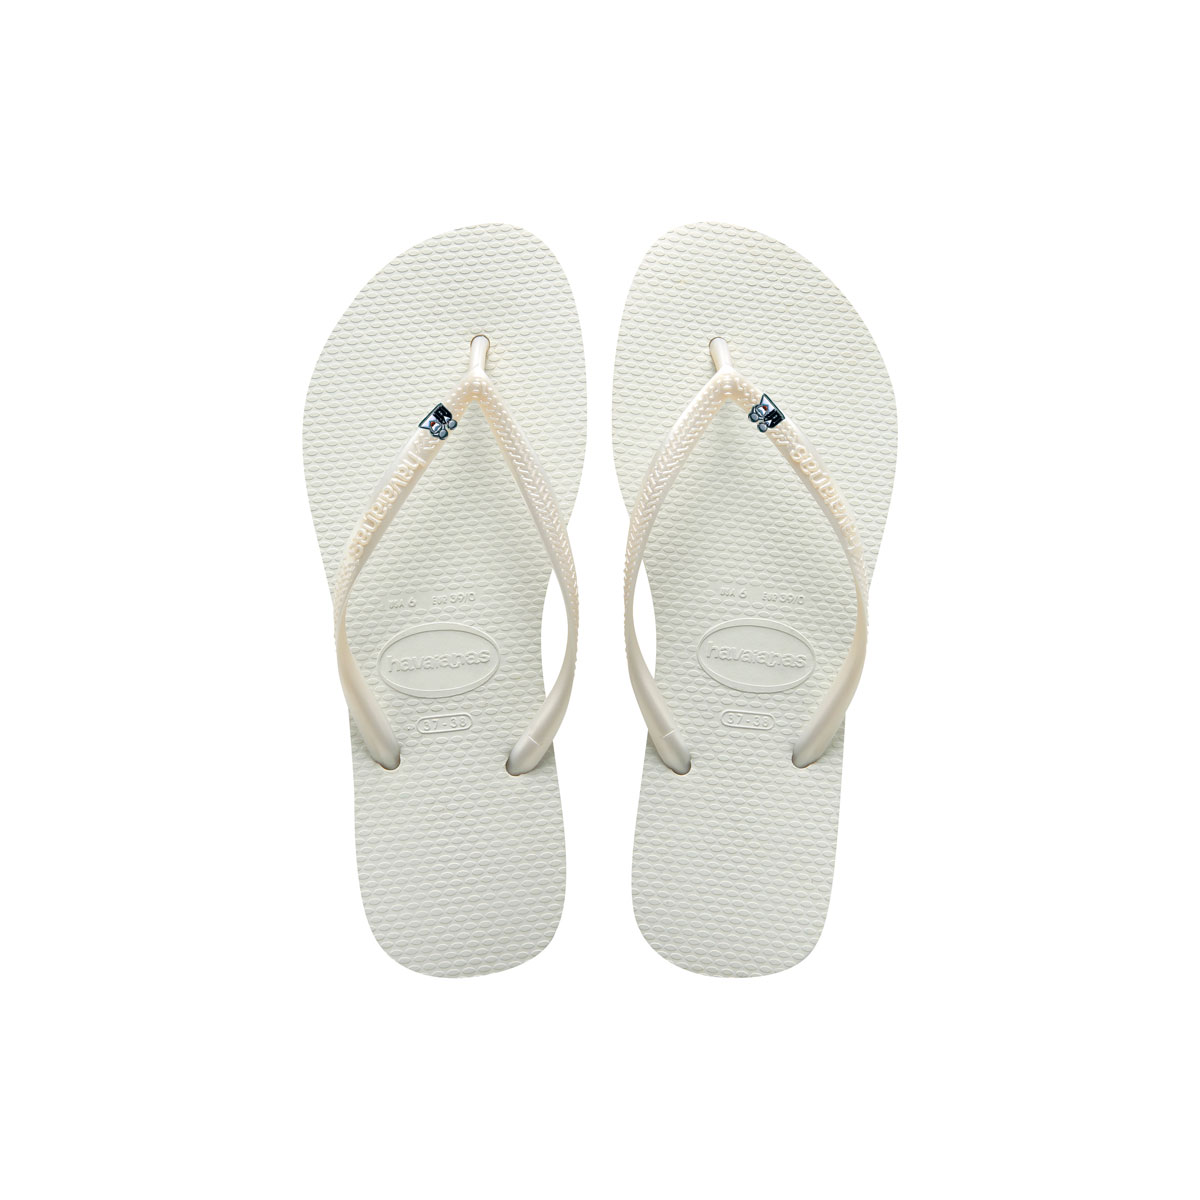 Havaianas White Flip Flops with Silver Bride & Groom Wedding Charm Gift